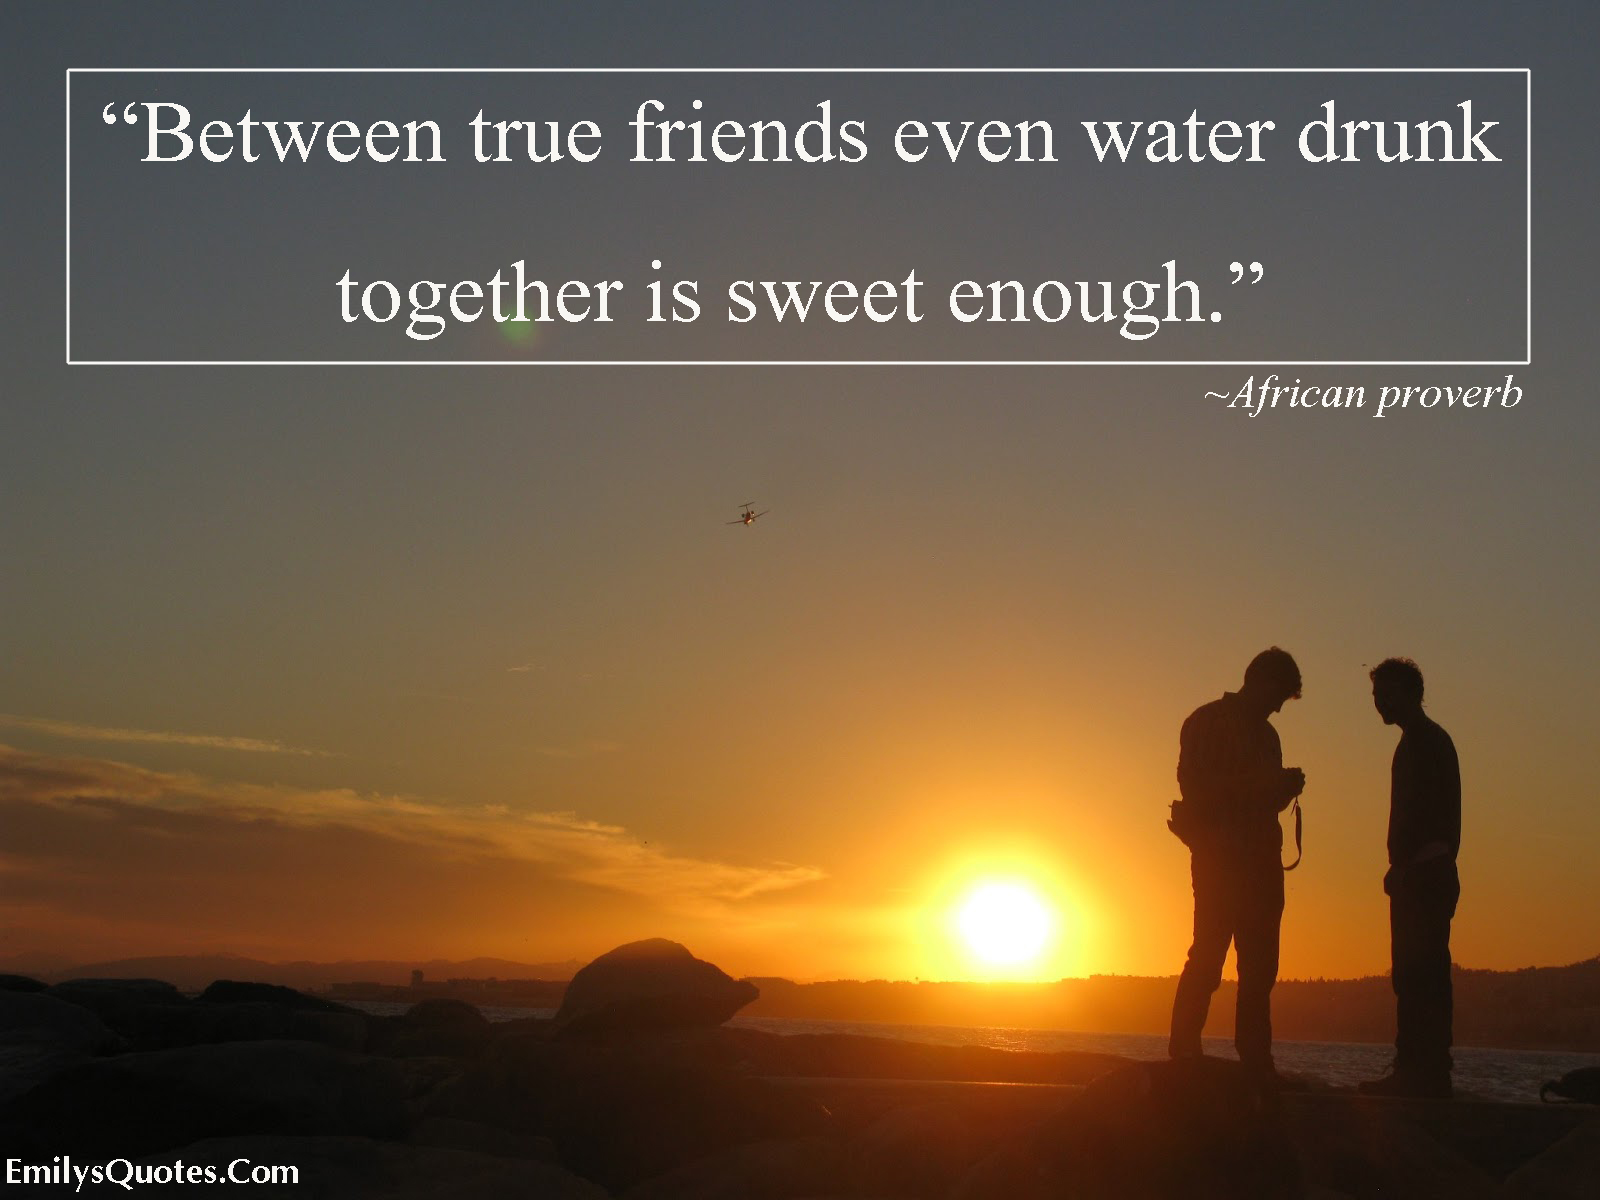 EmilysQuotes.Com - true friends, water drunk, being together, African proverb